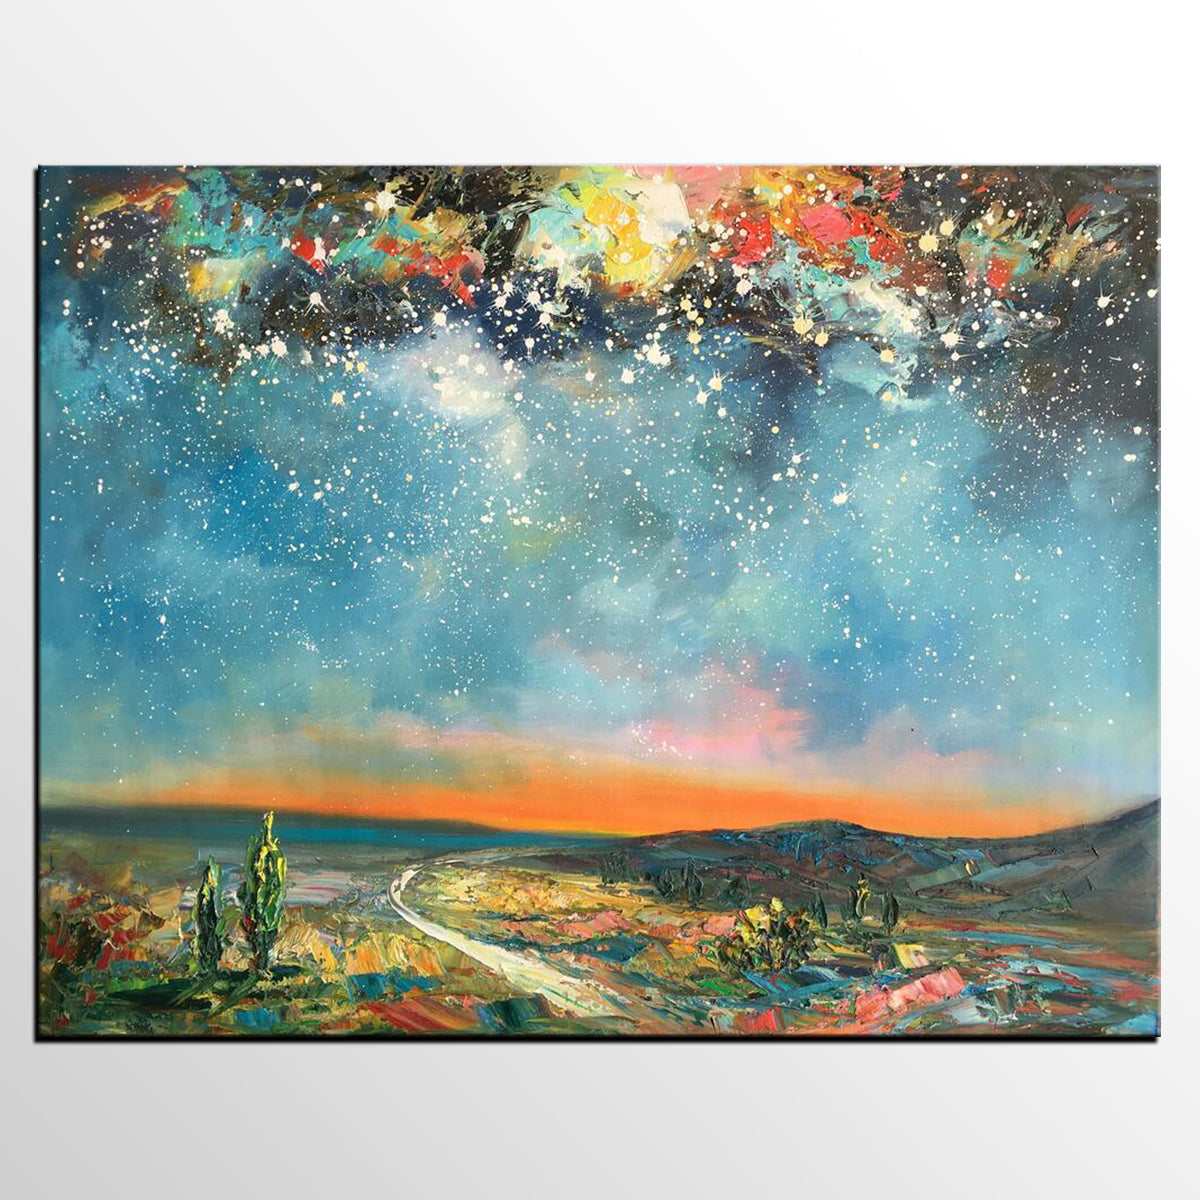 Abstract Art, Original Artwork, Starry Night Sky Painting, Landscape Art, Wall Art, Oil Painting